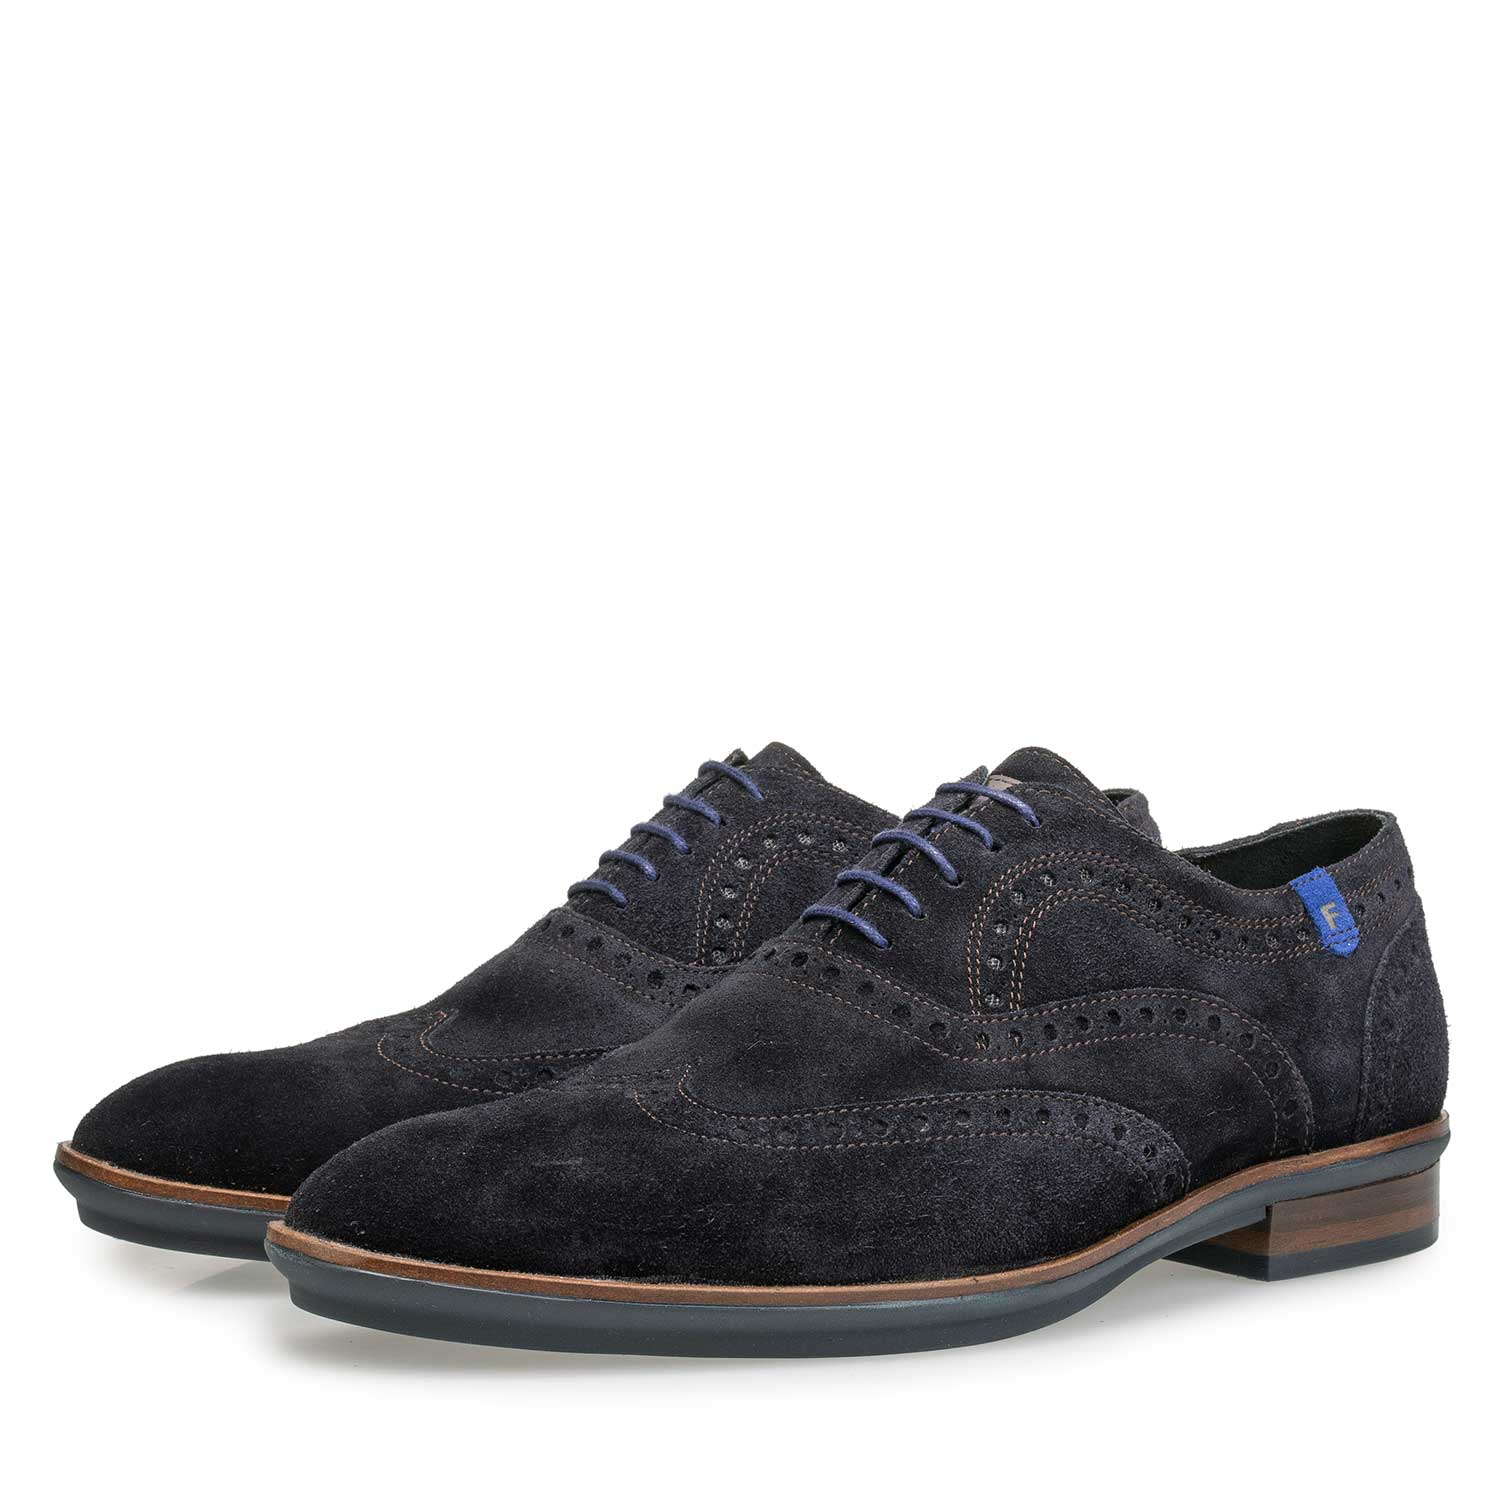 19048/03 - Blauwe suède brogue veterschoen